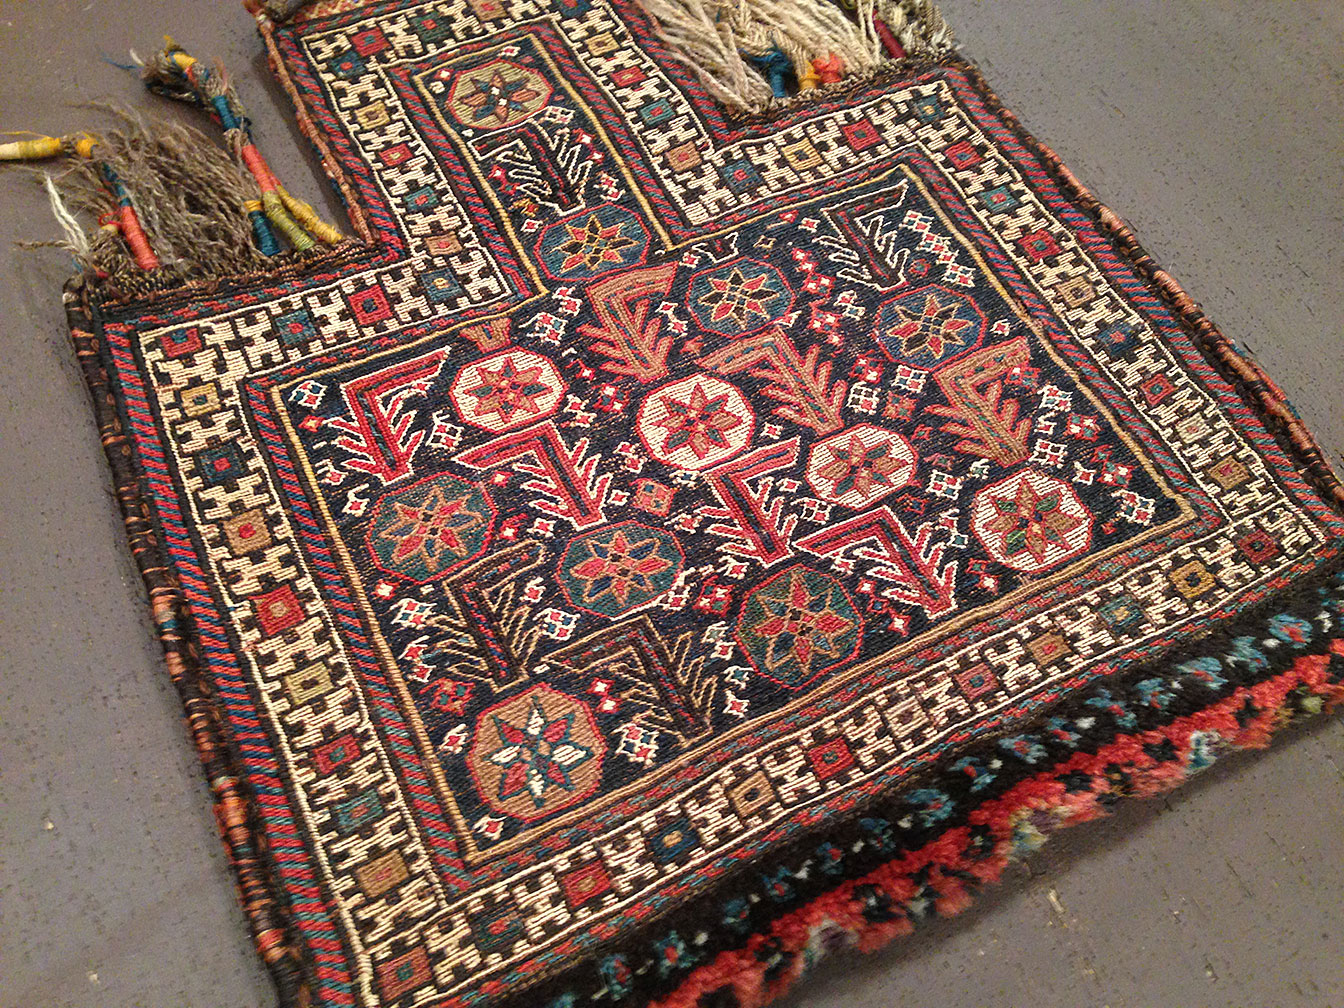 Antique salt bag Rug - # 50615